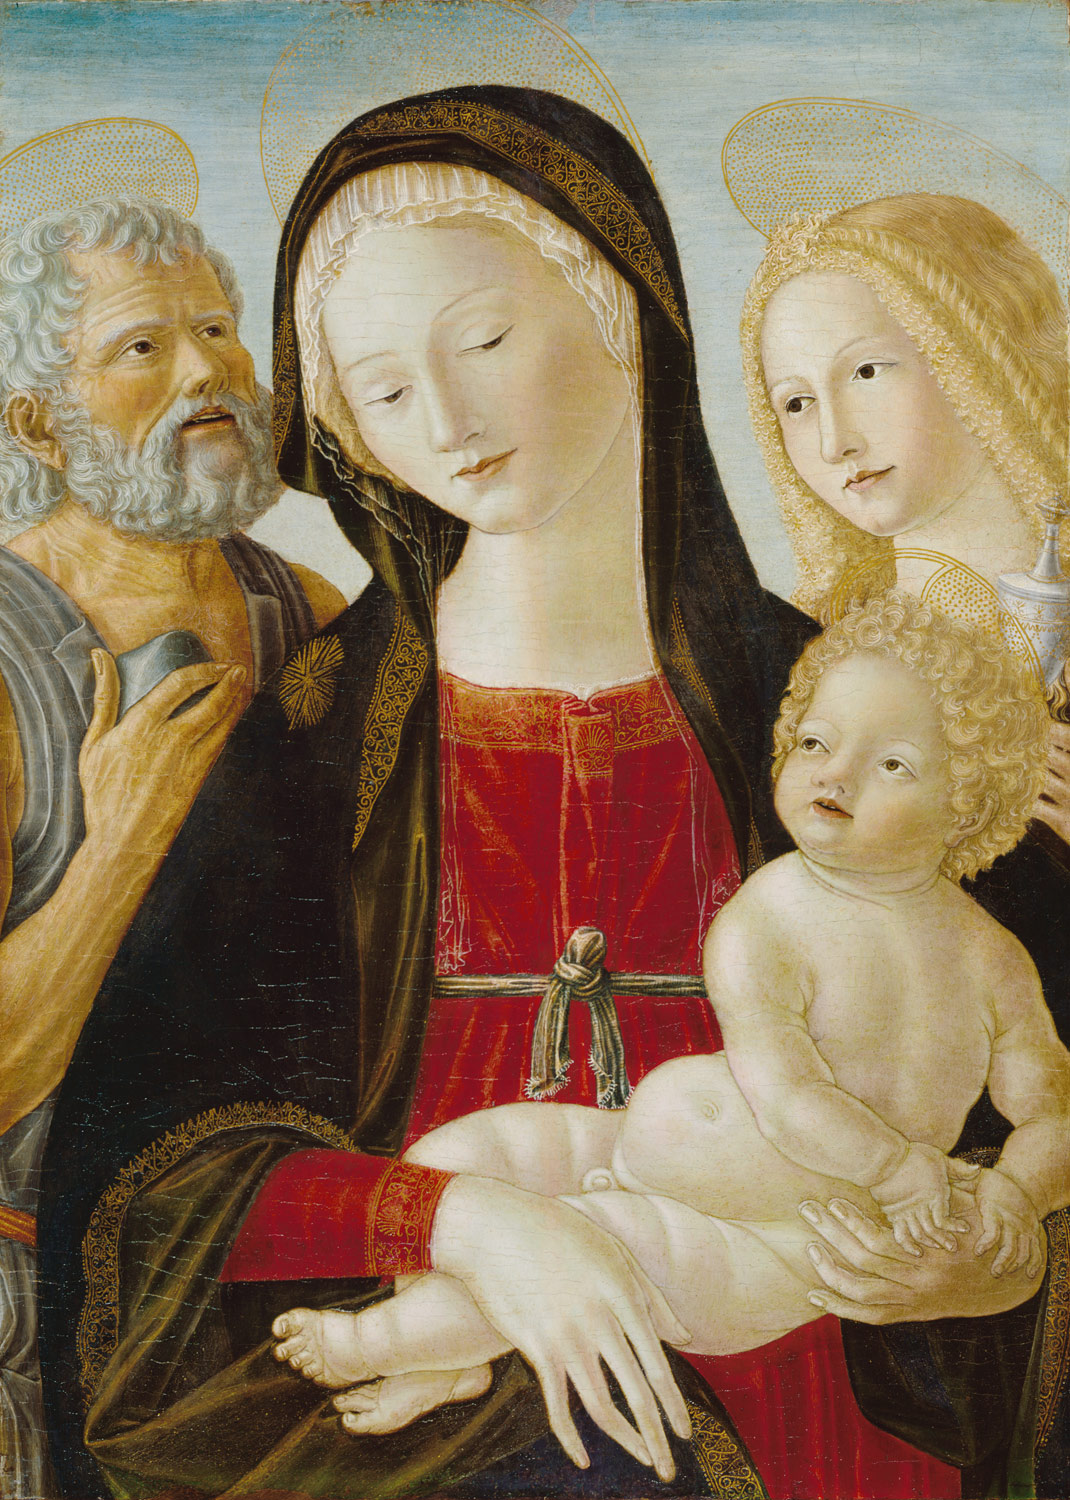 Madonna and Child with Saints Jerome and Mary Magdalene